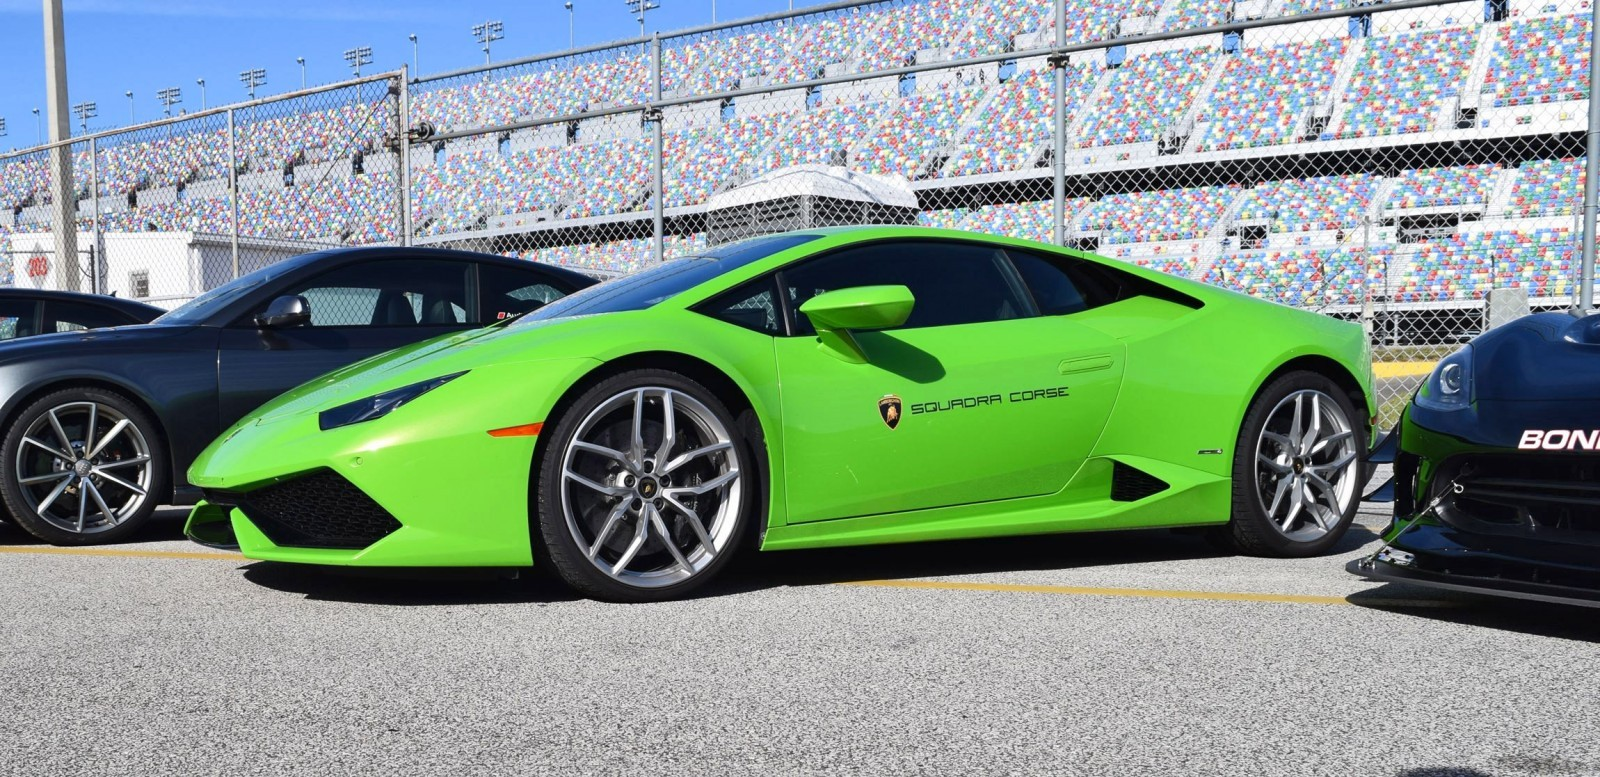 2015 lamborghini huracan verde mantis. Black Bedroom Furniture Sets. Home Design Ideas